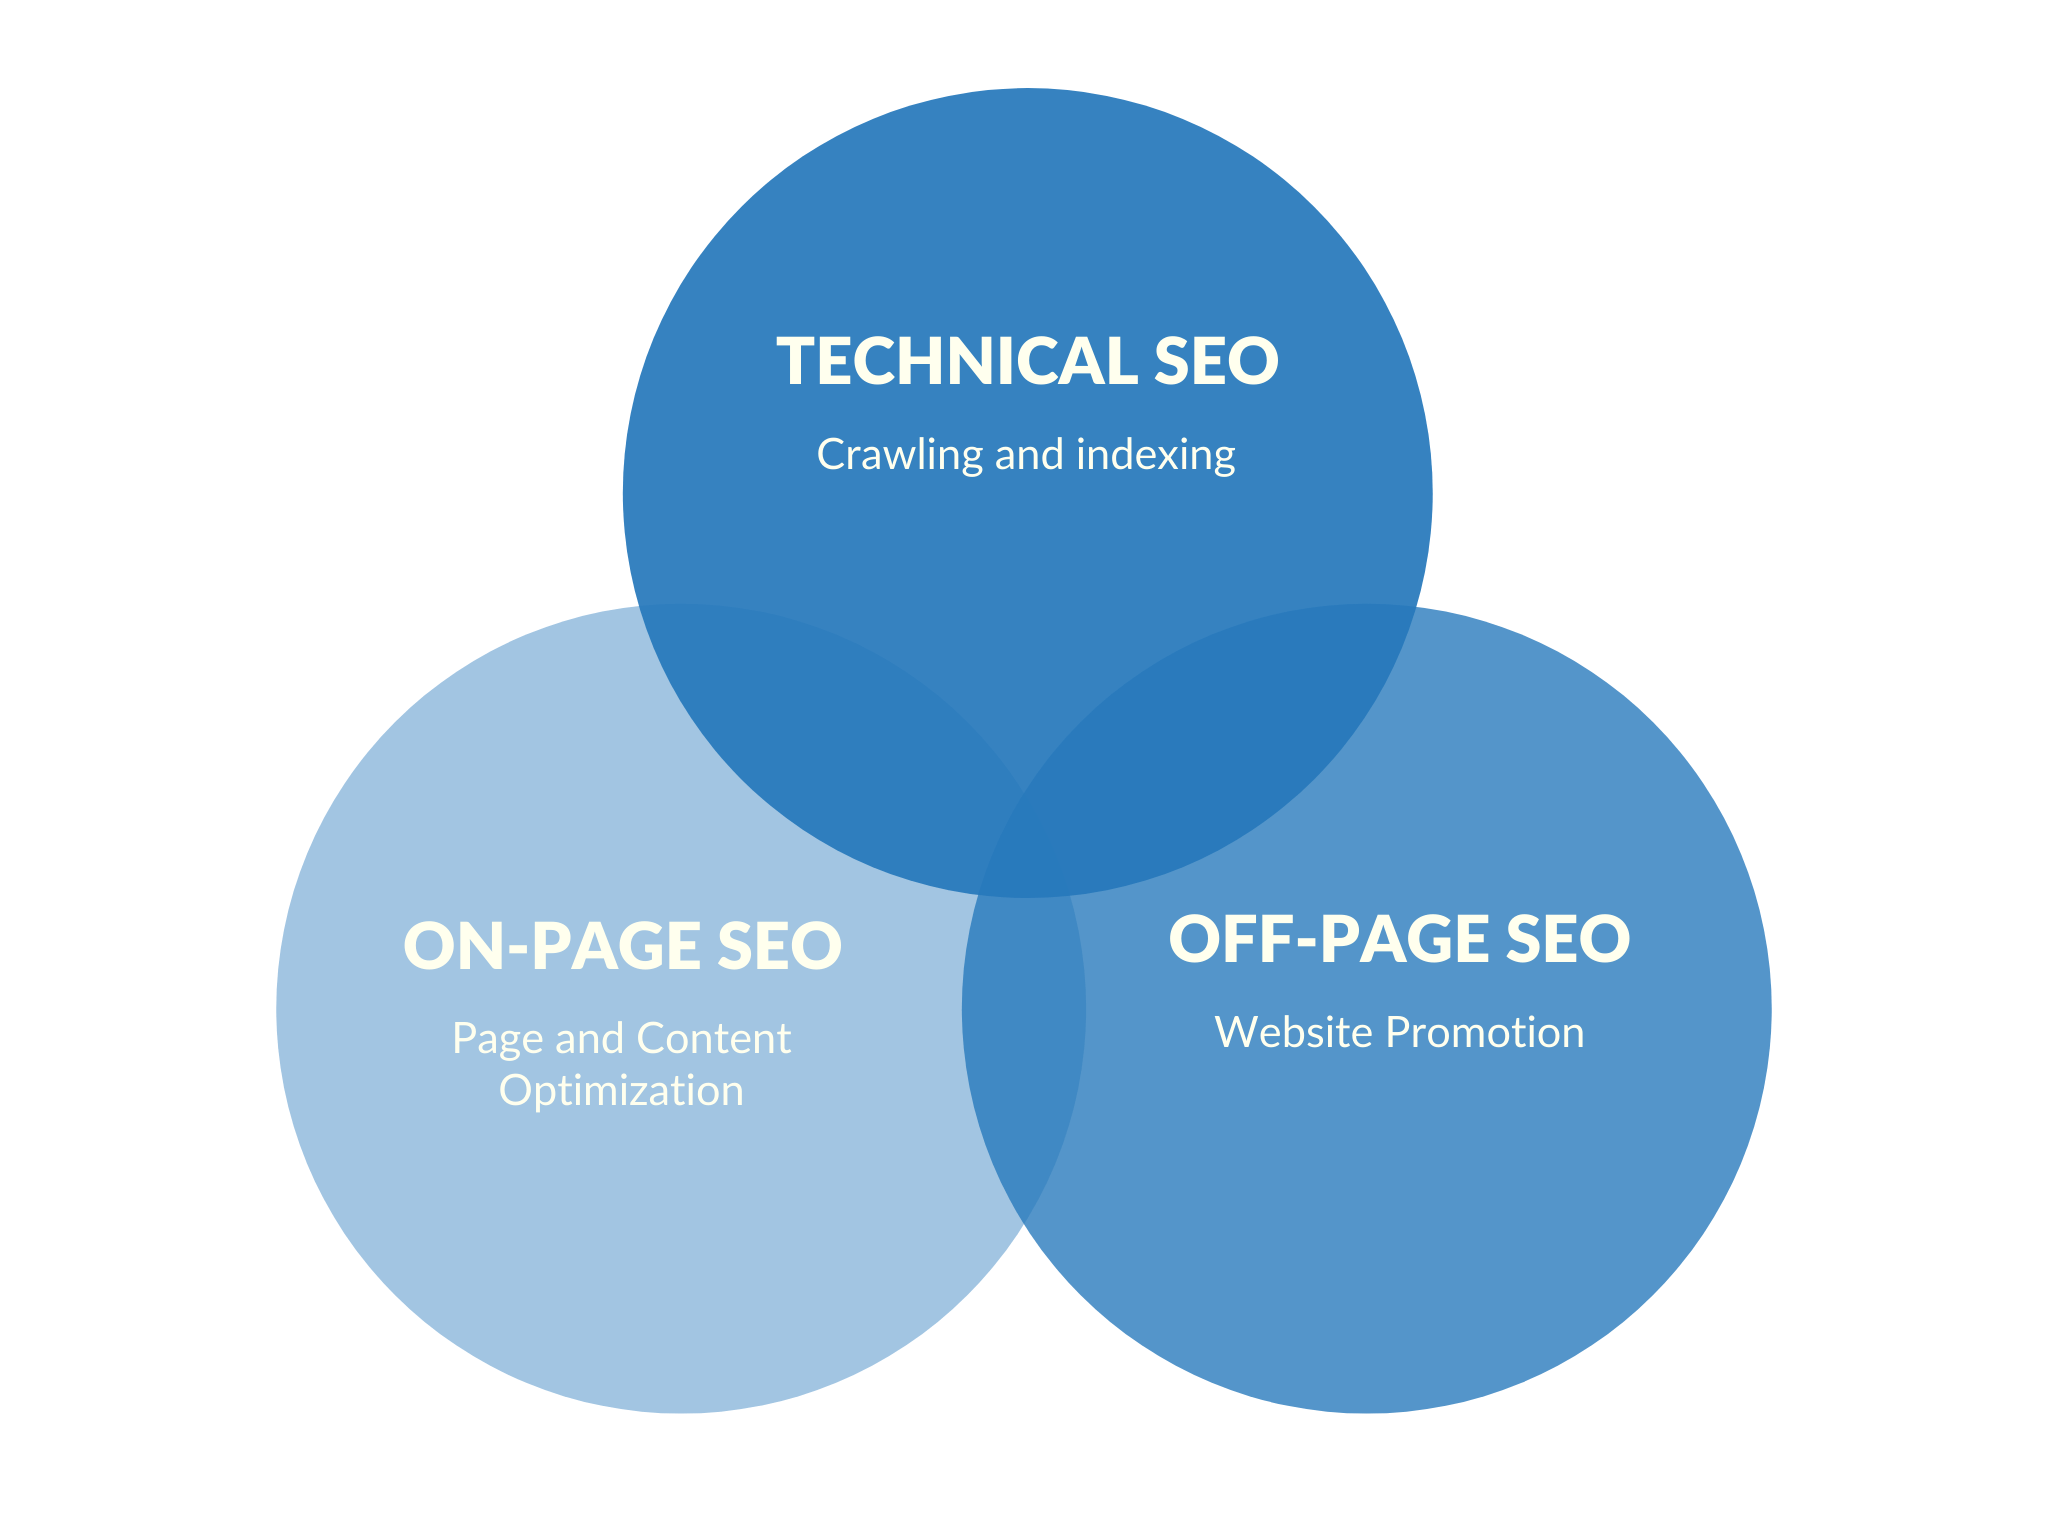 On-Page SEO and SEO